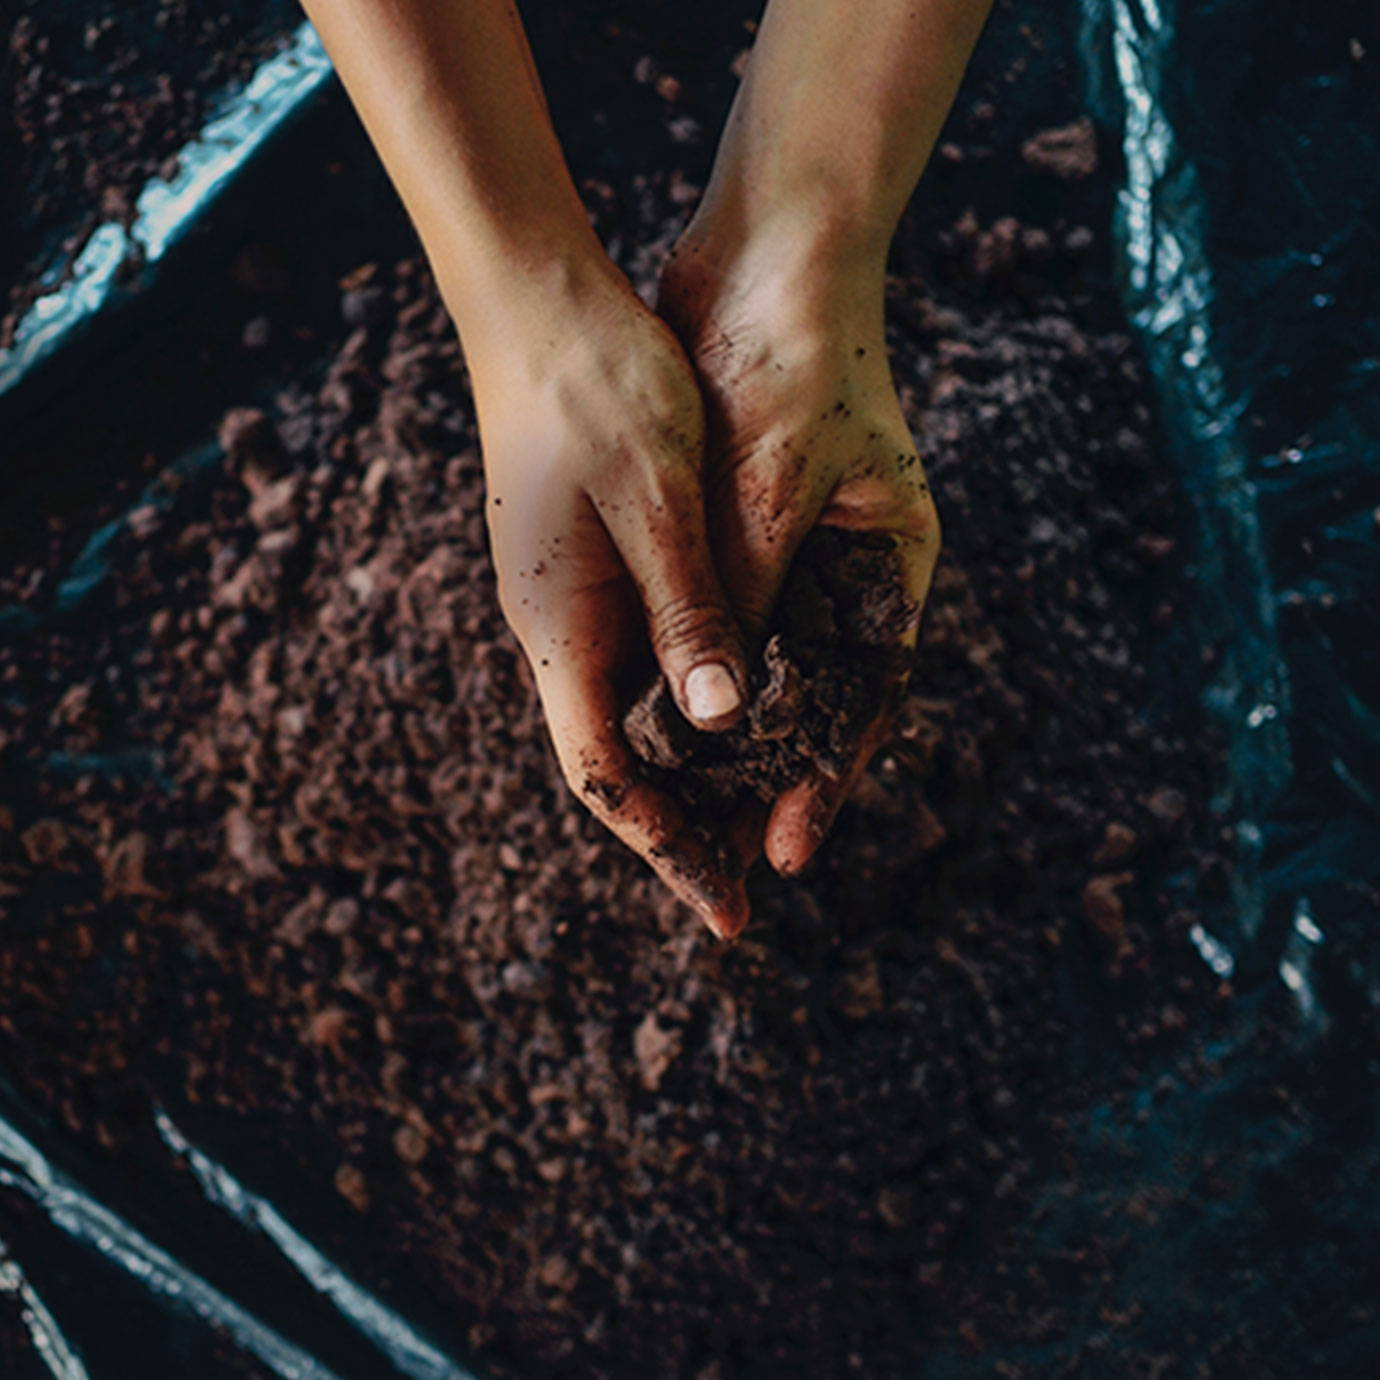 Ground up cacao and hands image